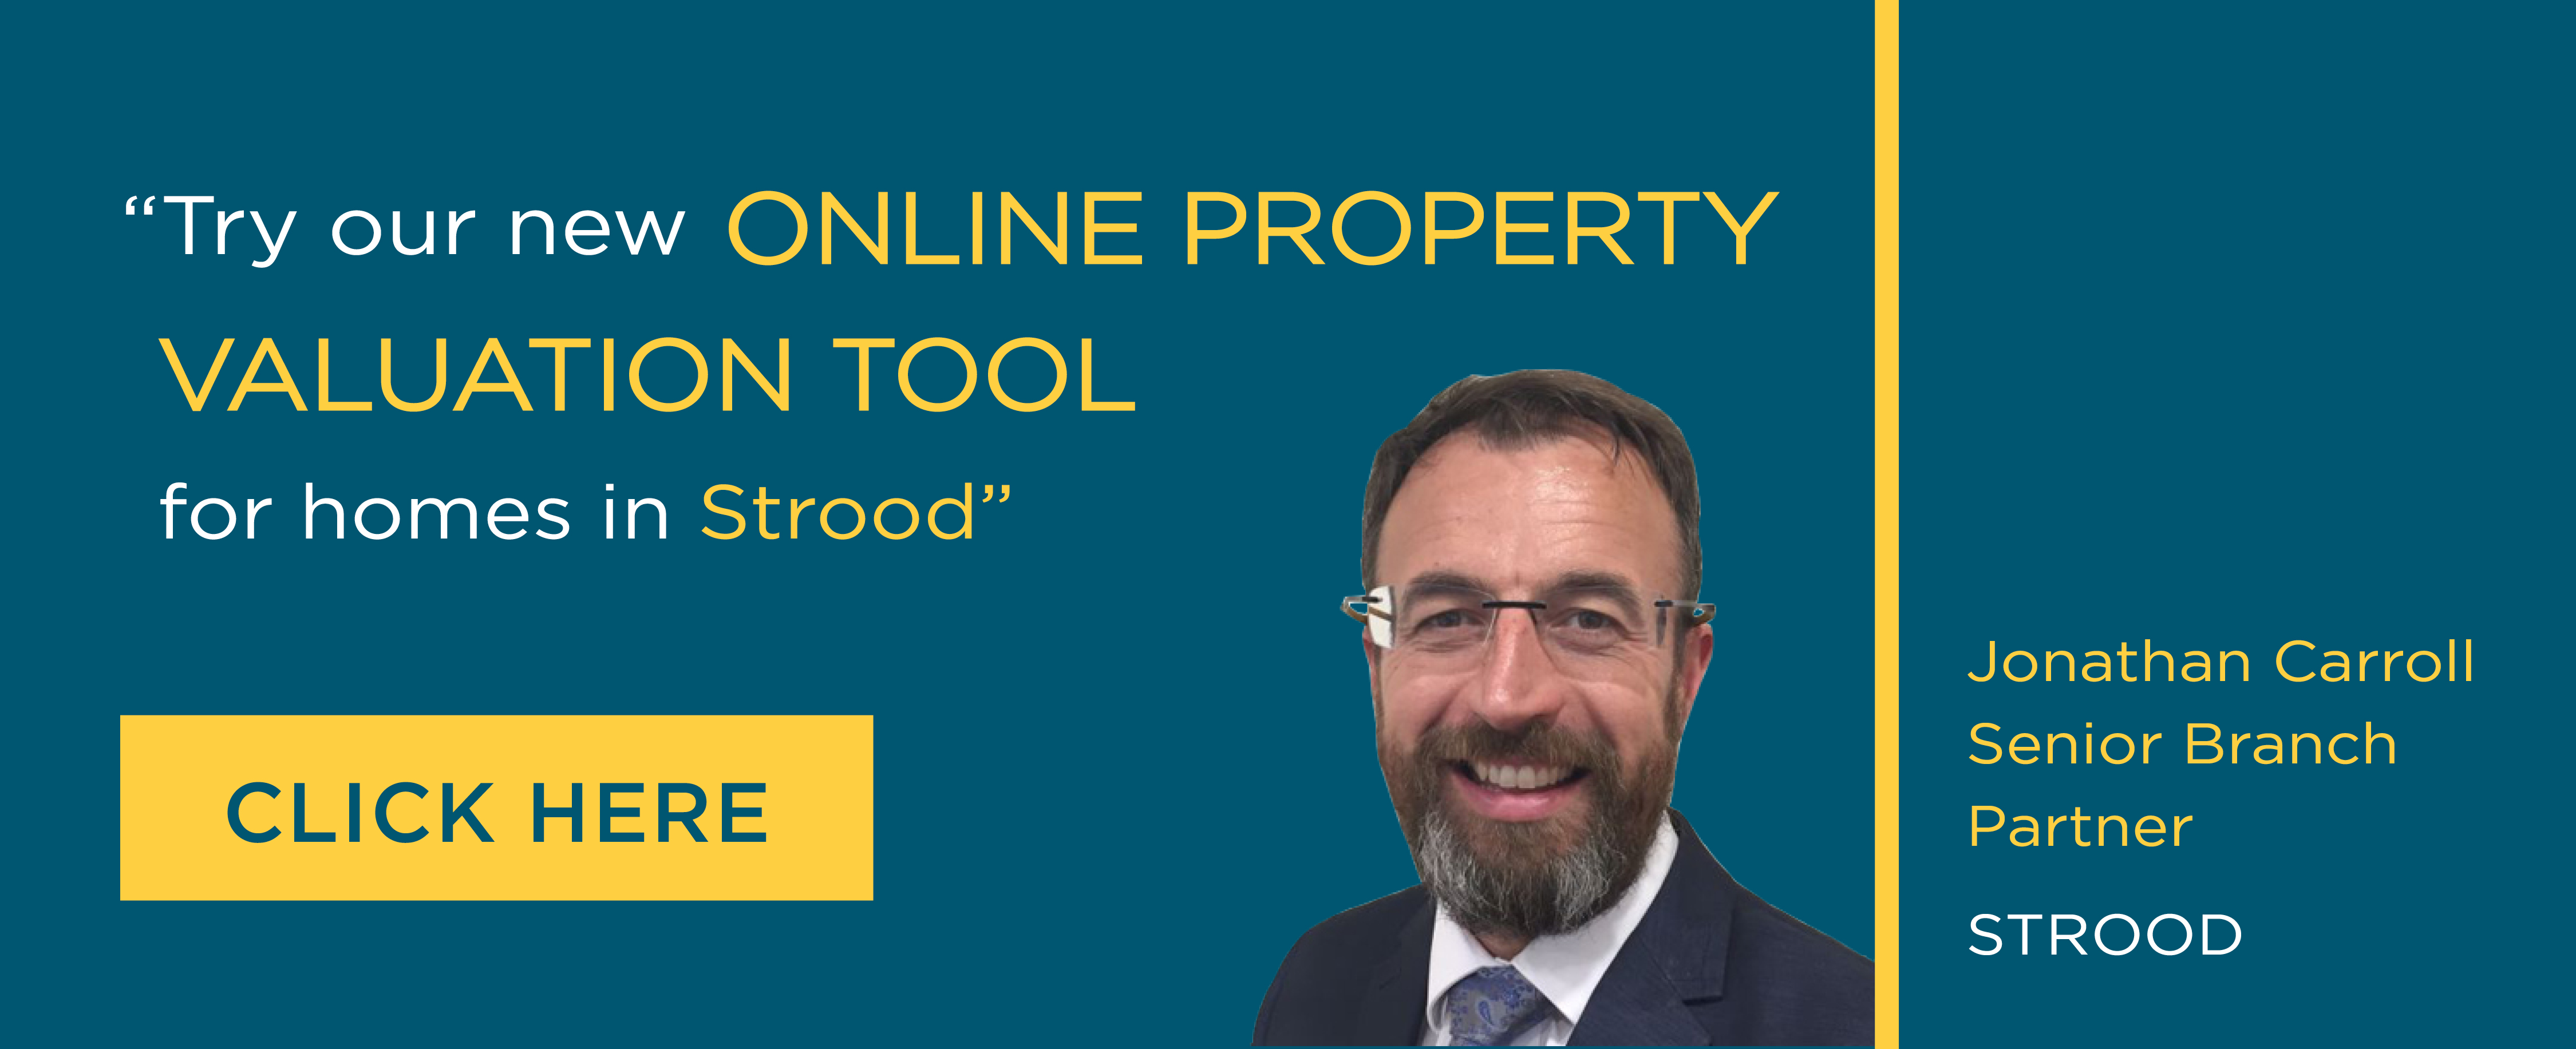 Online Valuation Tool website banner Strood